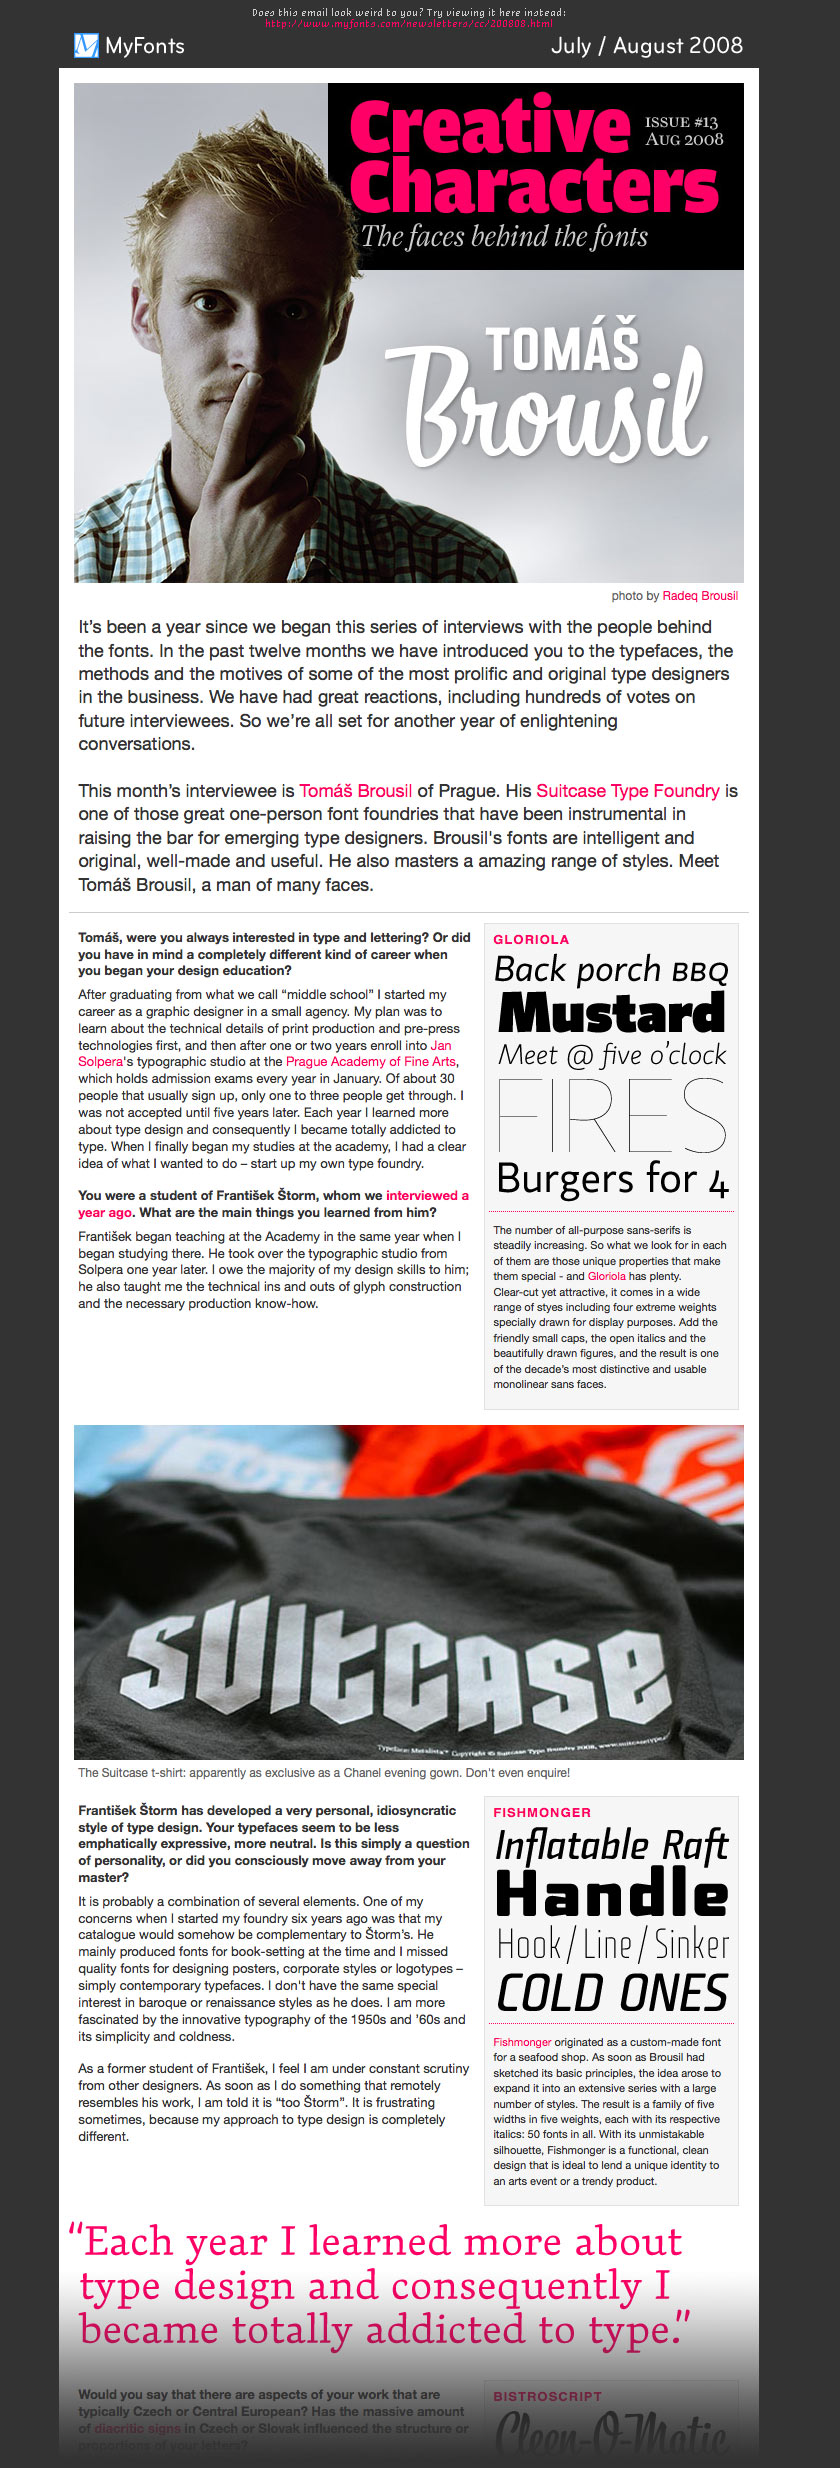 MyFonts Newsletter via 2008